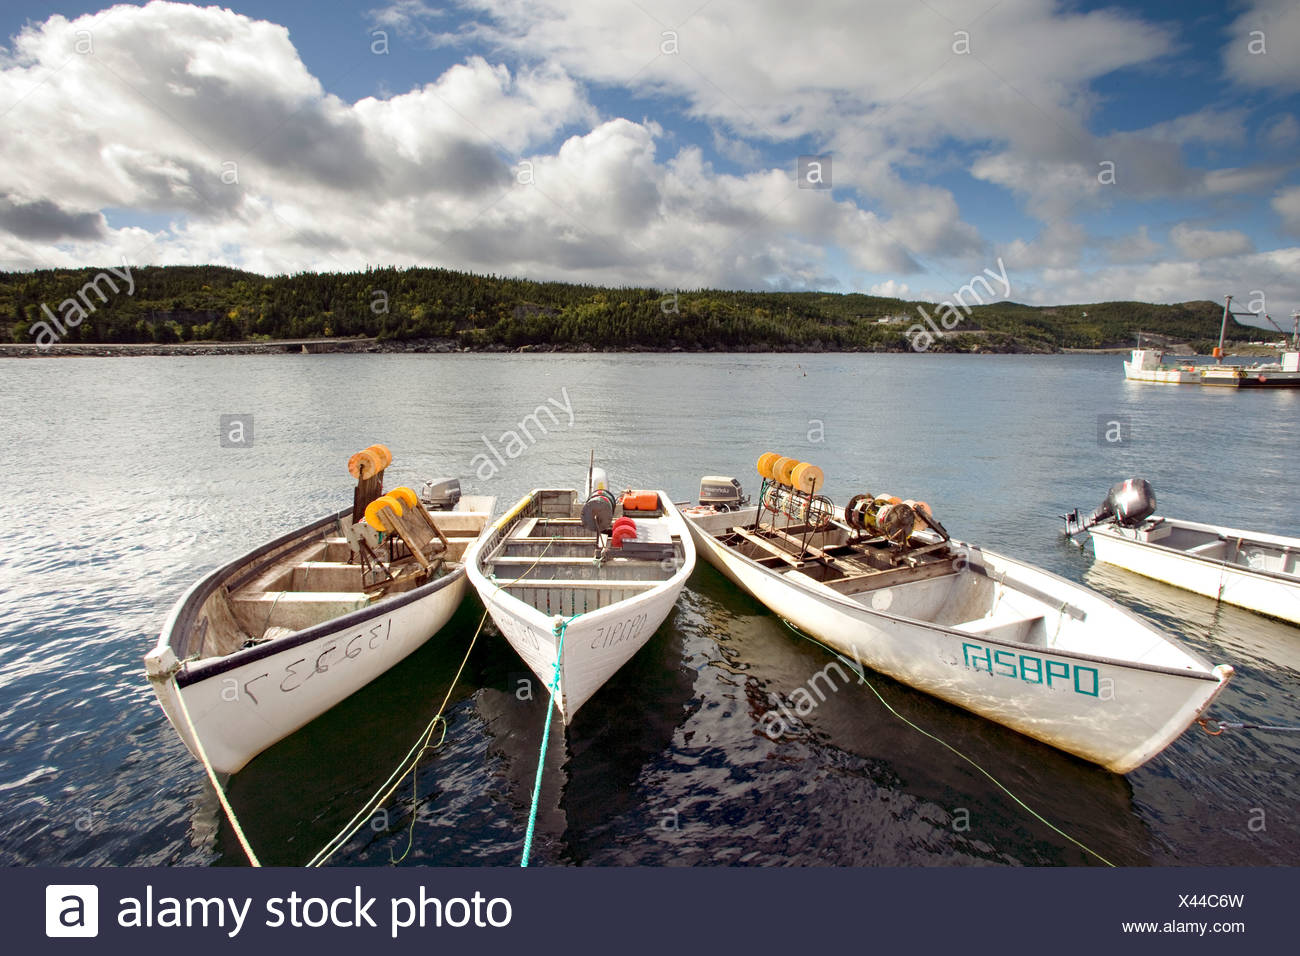 Boats tied up in Plate West Cove, Newfoundland and Labrador, Canada. - Stock Image